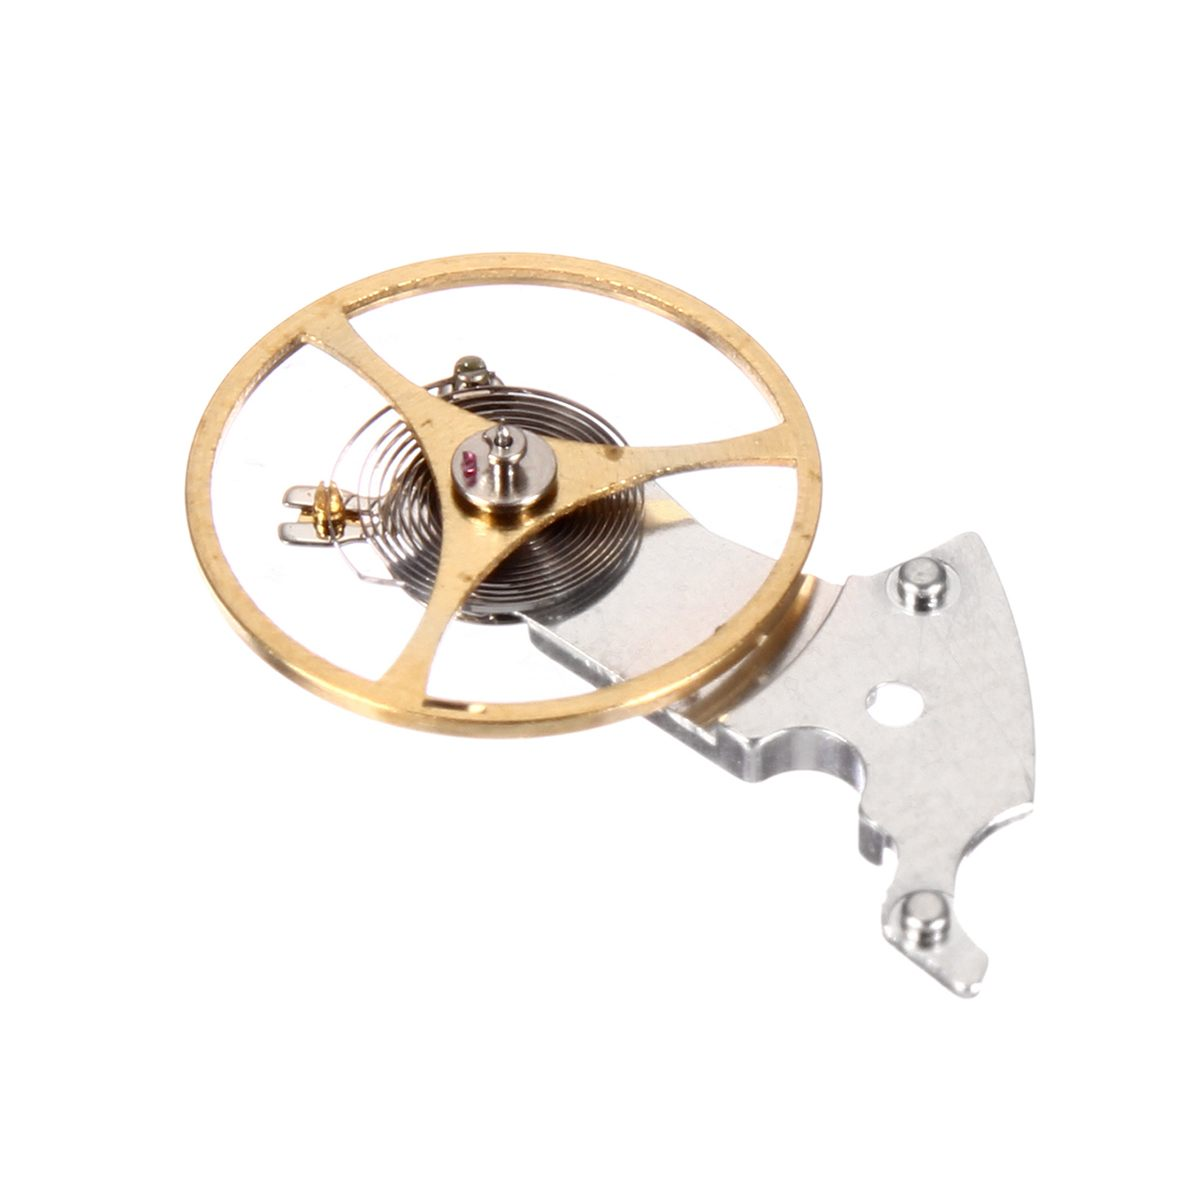 Mechanical Watch Winding Movement Balance Bridge Wheel Spring Replacement Accessories 2824 2834 2836-2 For ETA Repair Tools PartMechanical Watch Winding Movement Balance Bridge Wheel Spring Replacement Accessories 2824 2834 2836-2 For ETA Repair Tools Part